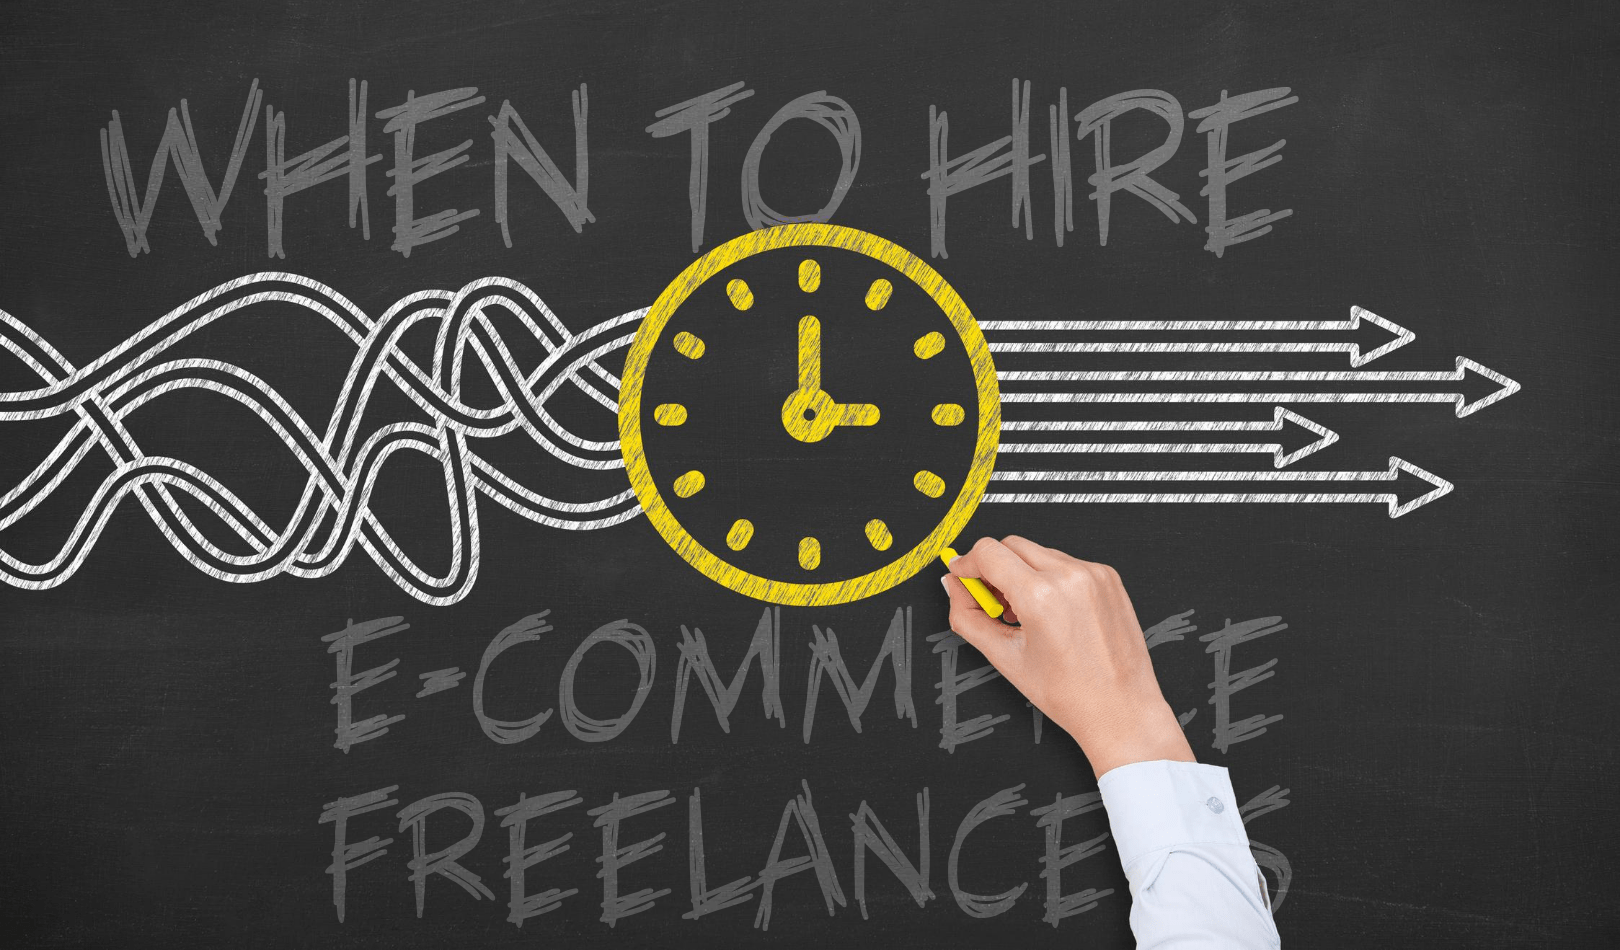 When-to-Hire-E-commerce-Freelancers